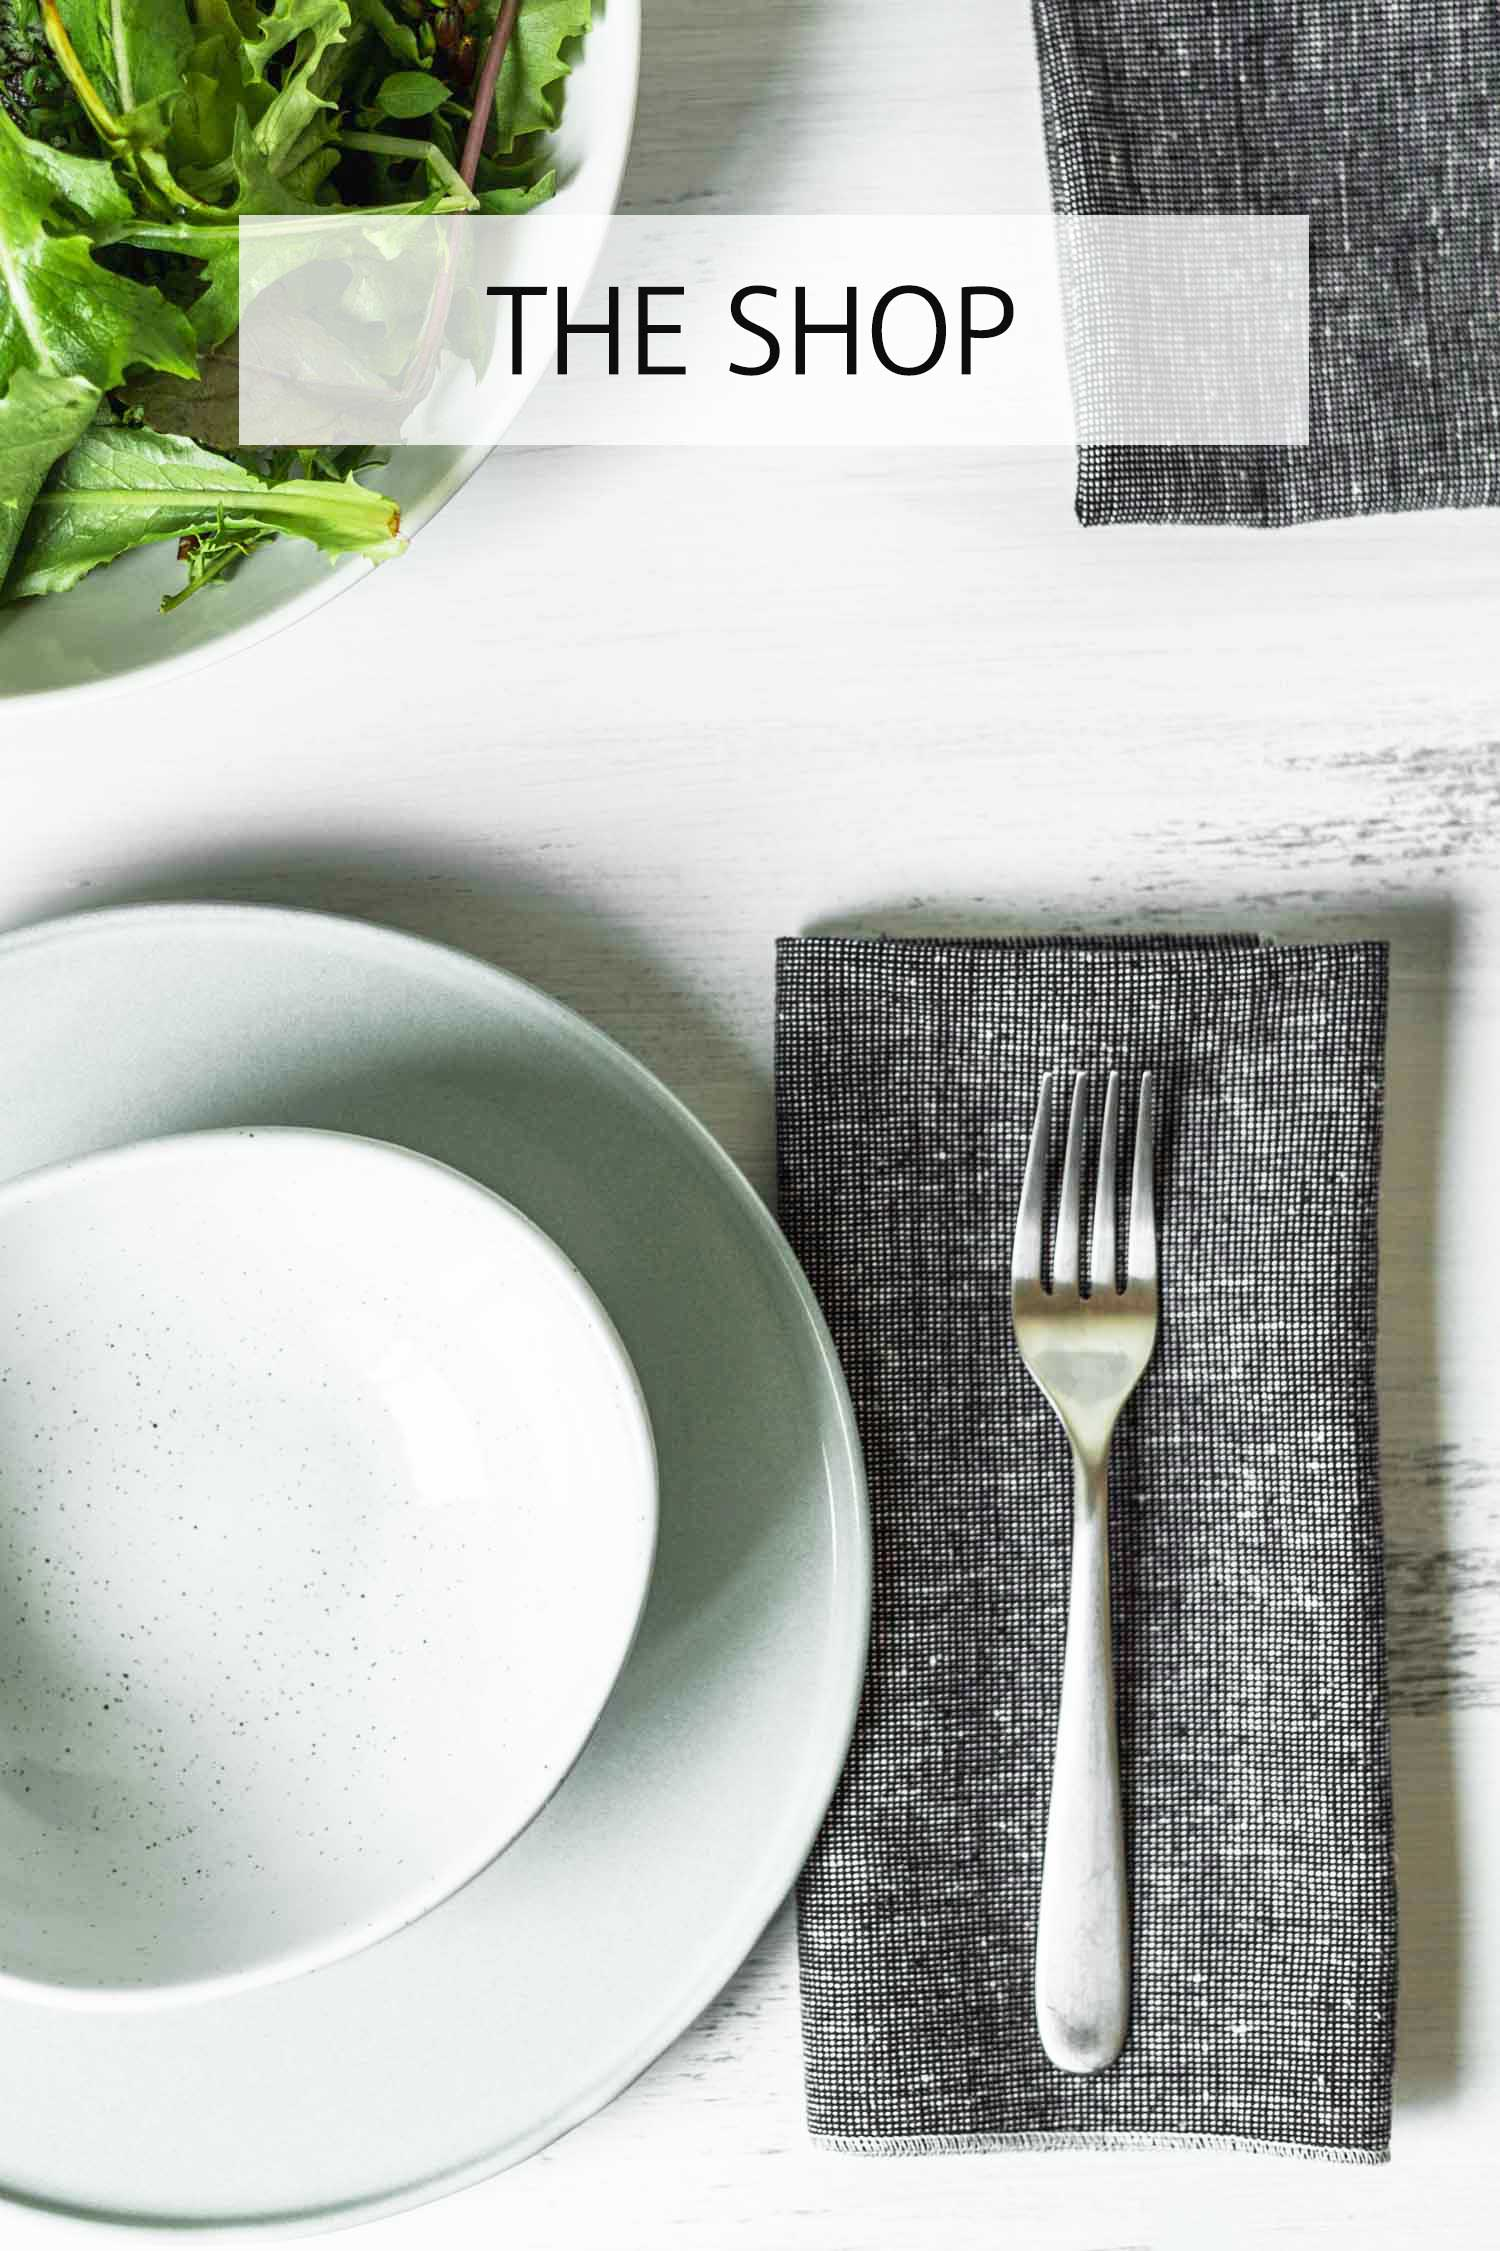 The Beautiful Ingredient Shop, featuring organic kitchen & table linens